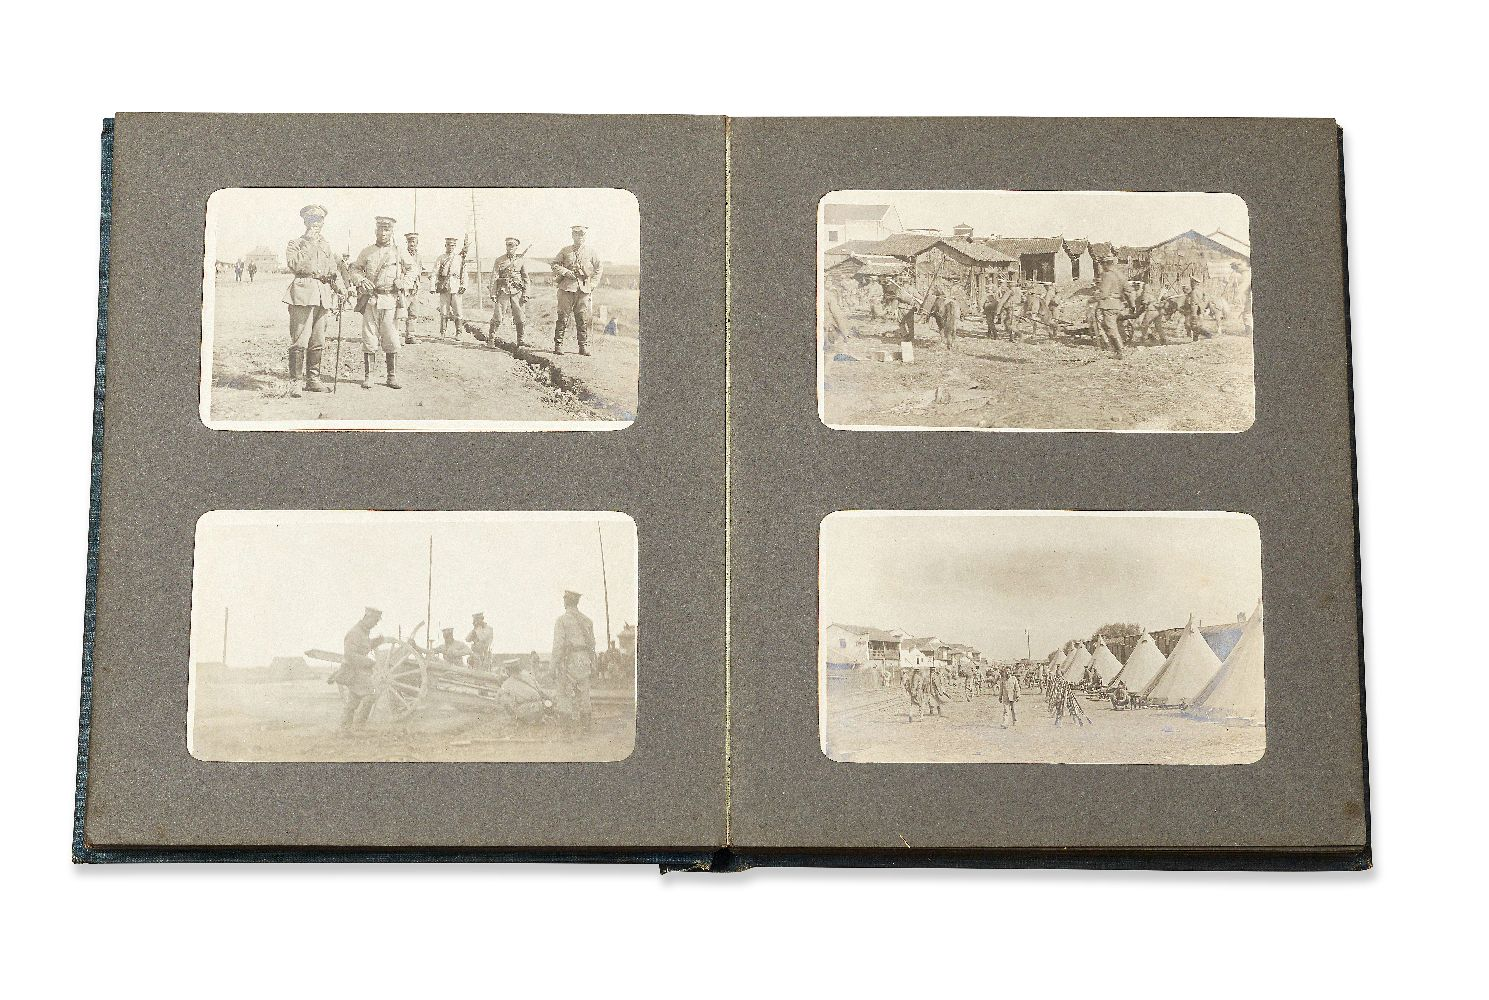 Lot 234 - An album of seventy eight photographs, attributed to show images of the Battle of Yangxia in1911,